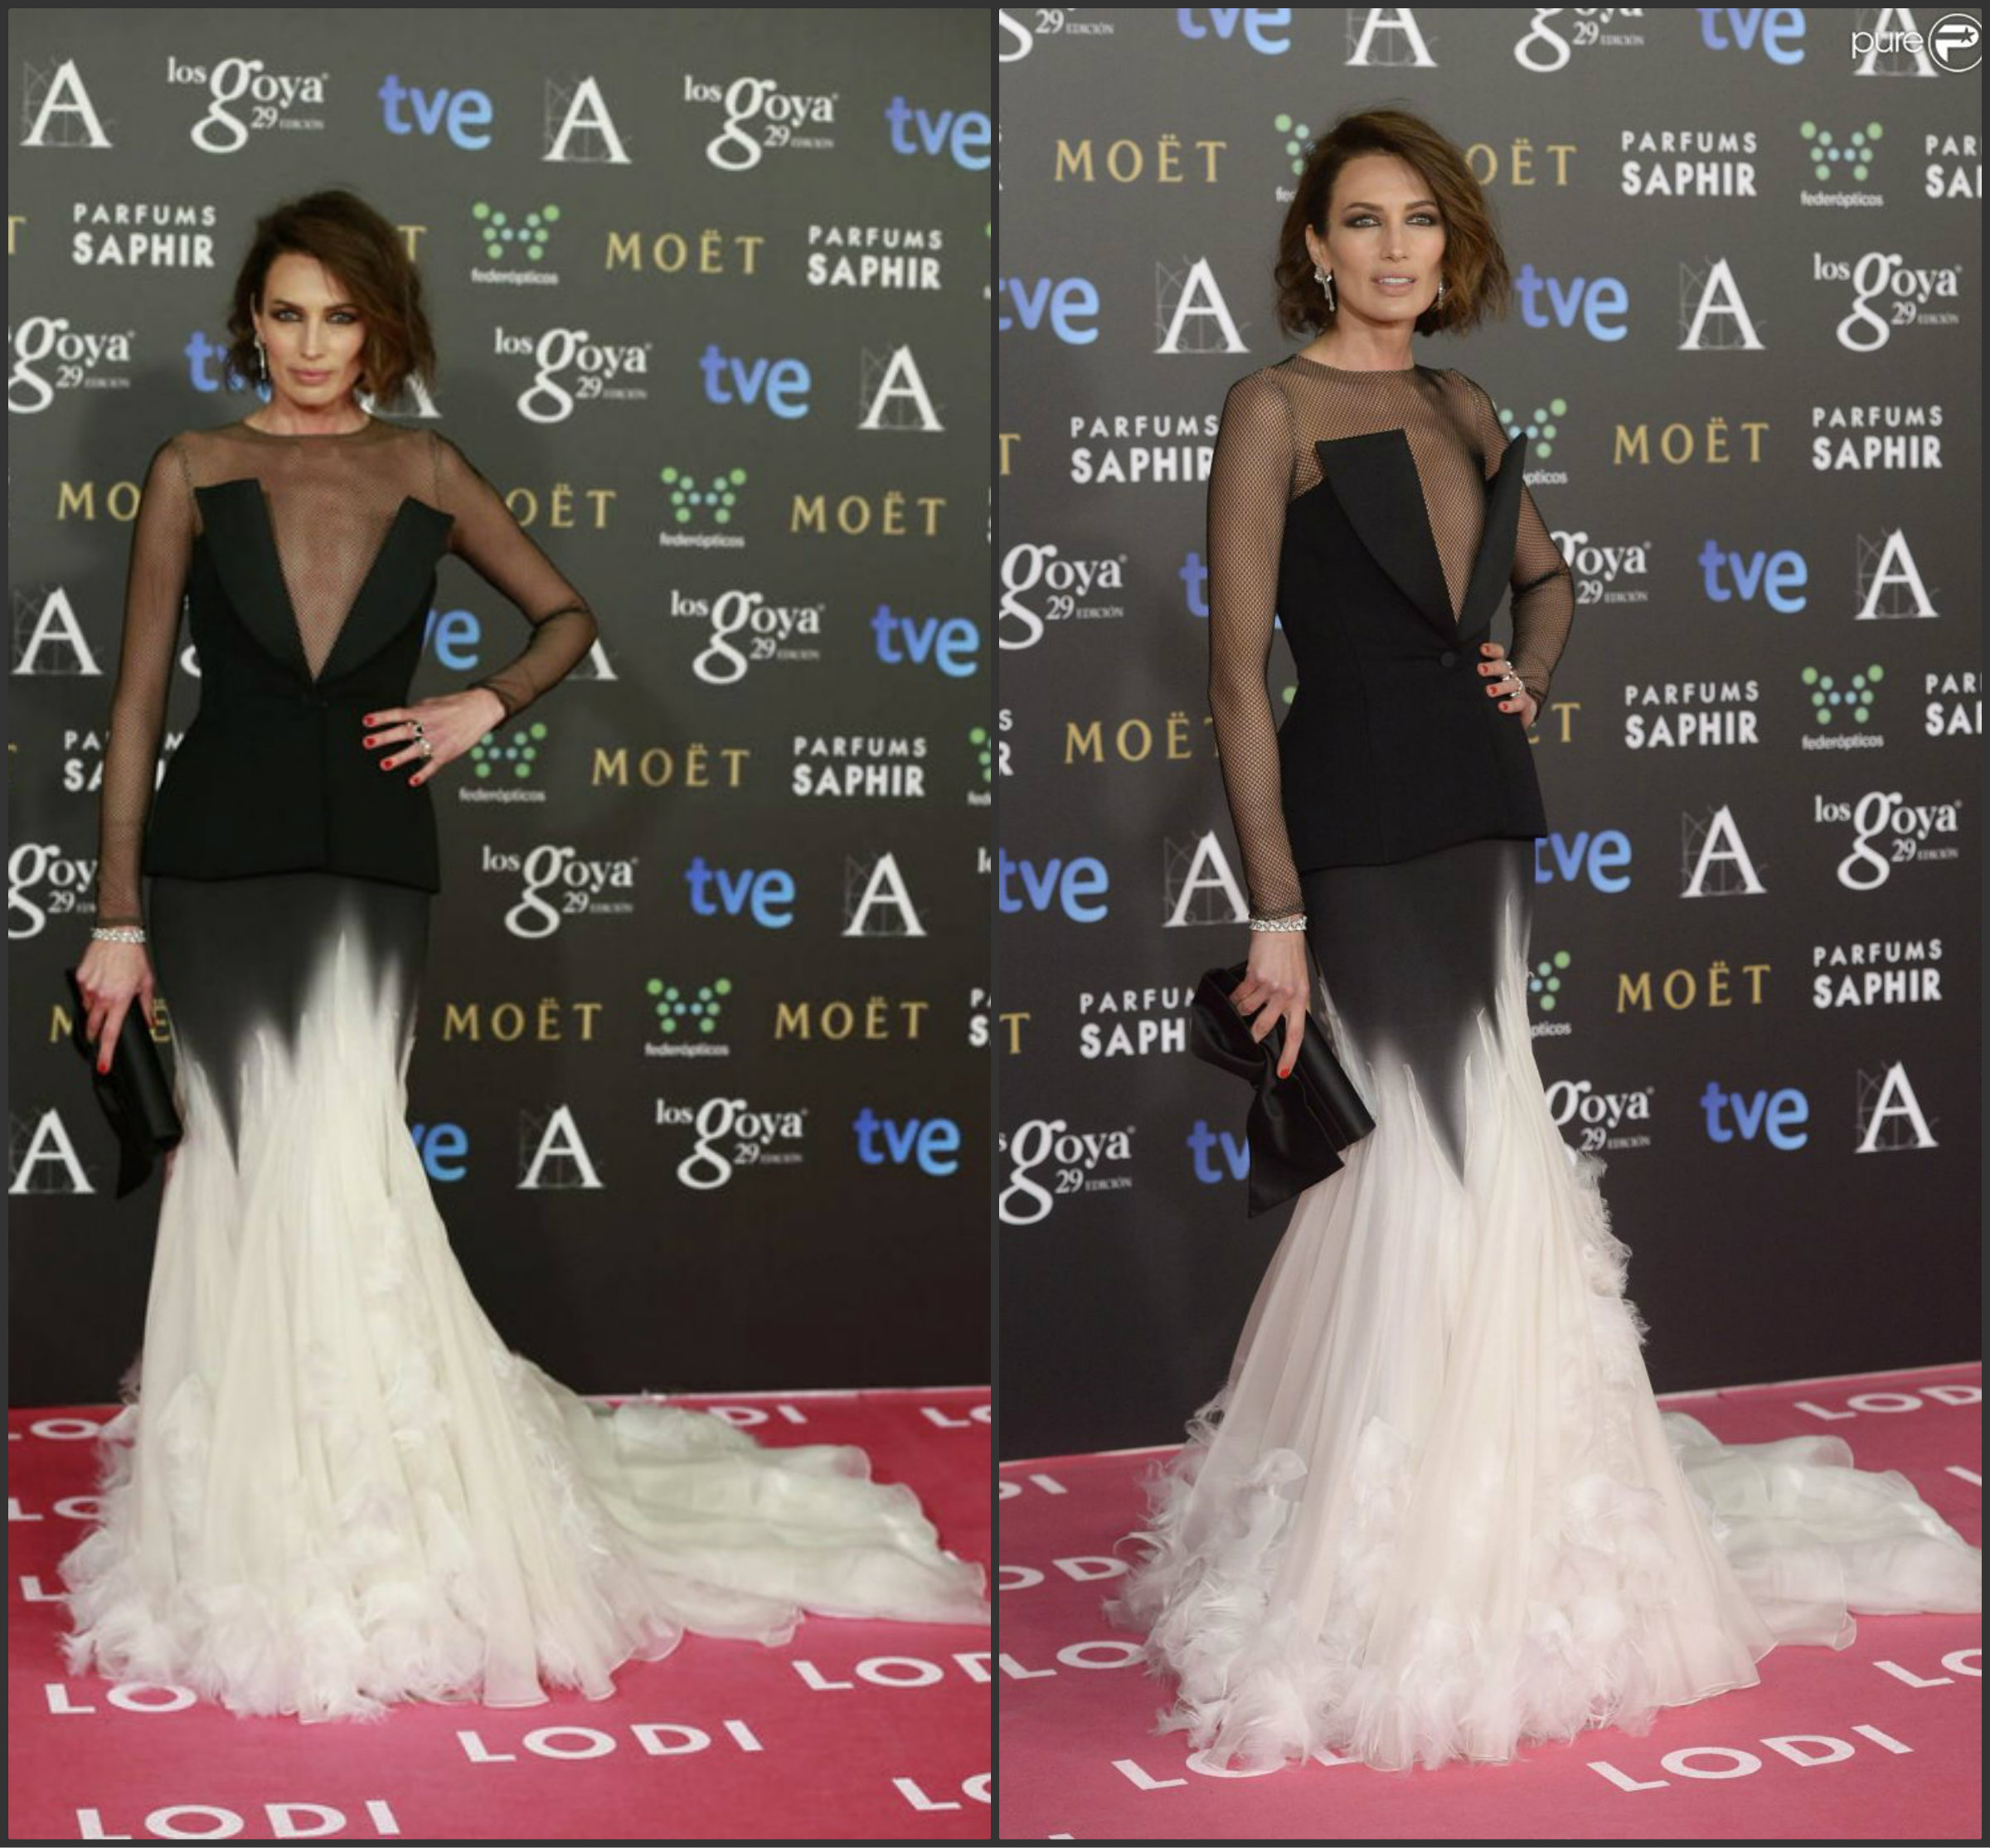 Nieves-Alvarez-In-Stefane-Rolland-Couture-at-the-2015-Goya-Awards